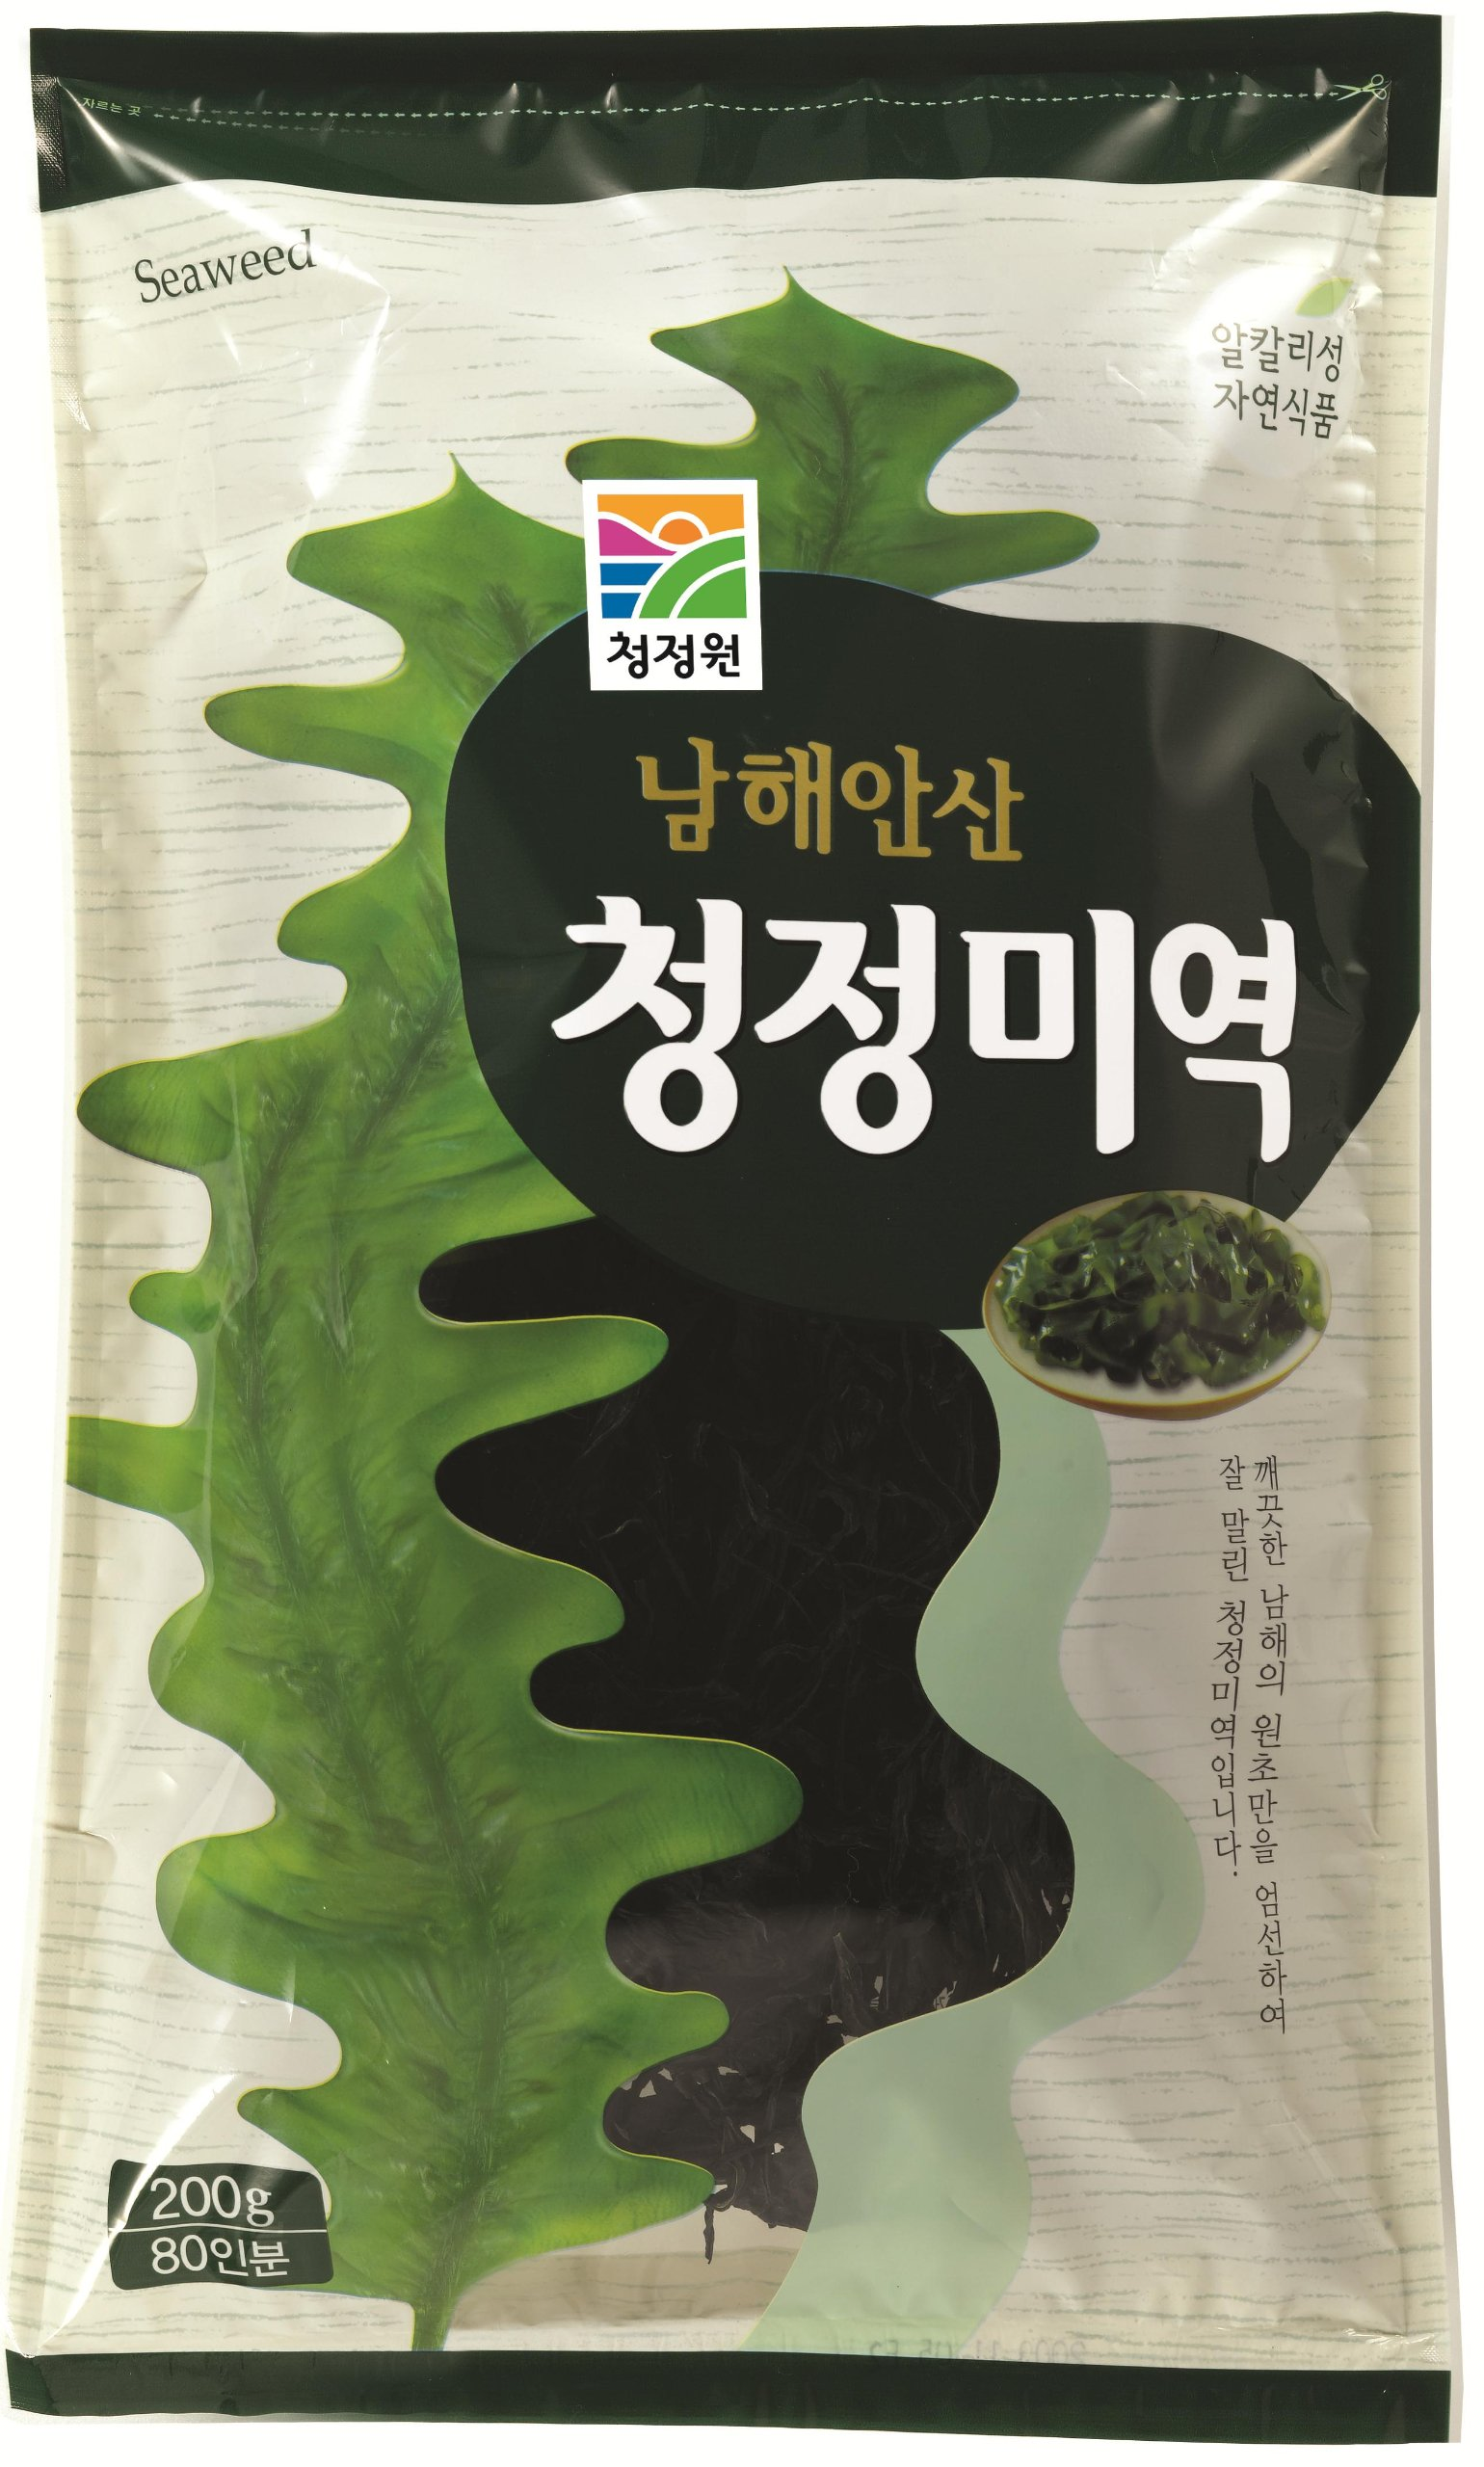 Chung Jung One Dried Seaweed 7 oz (200 g) (Pack of 2) by Chung Jung One